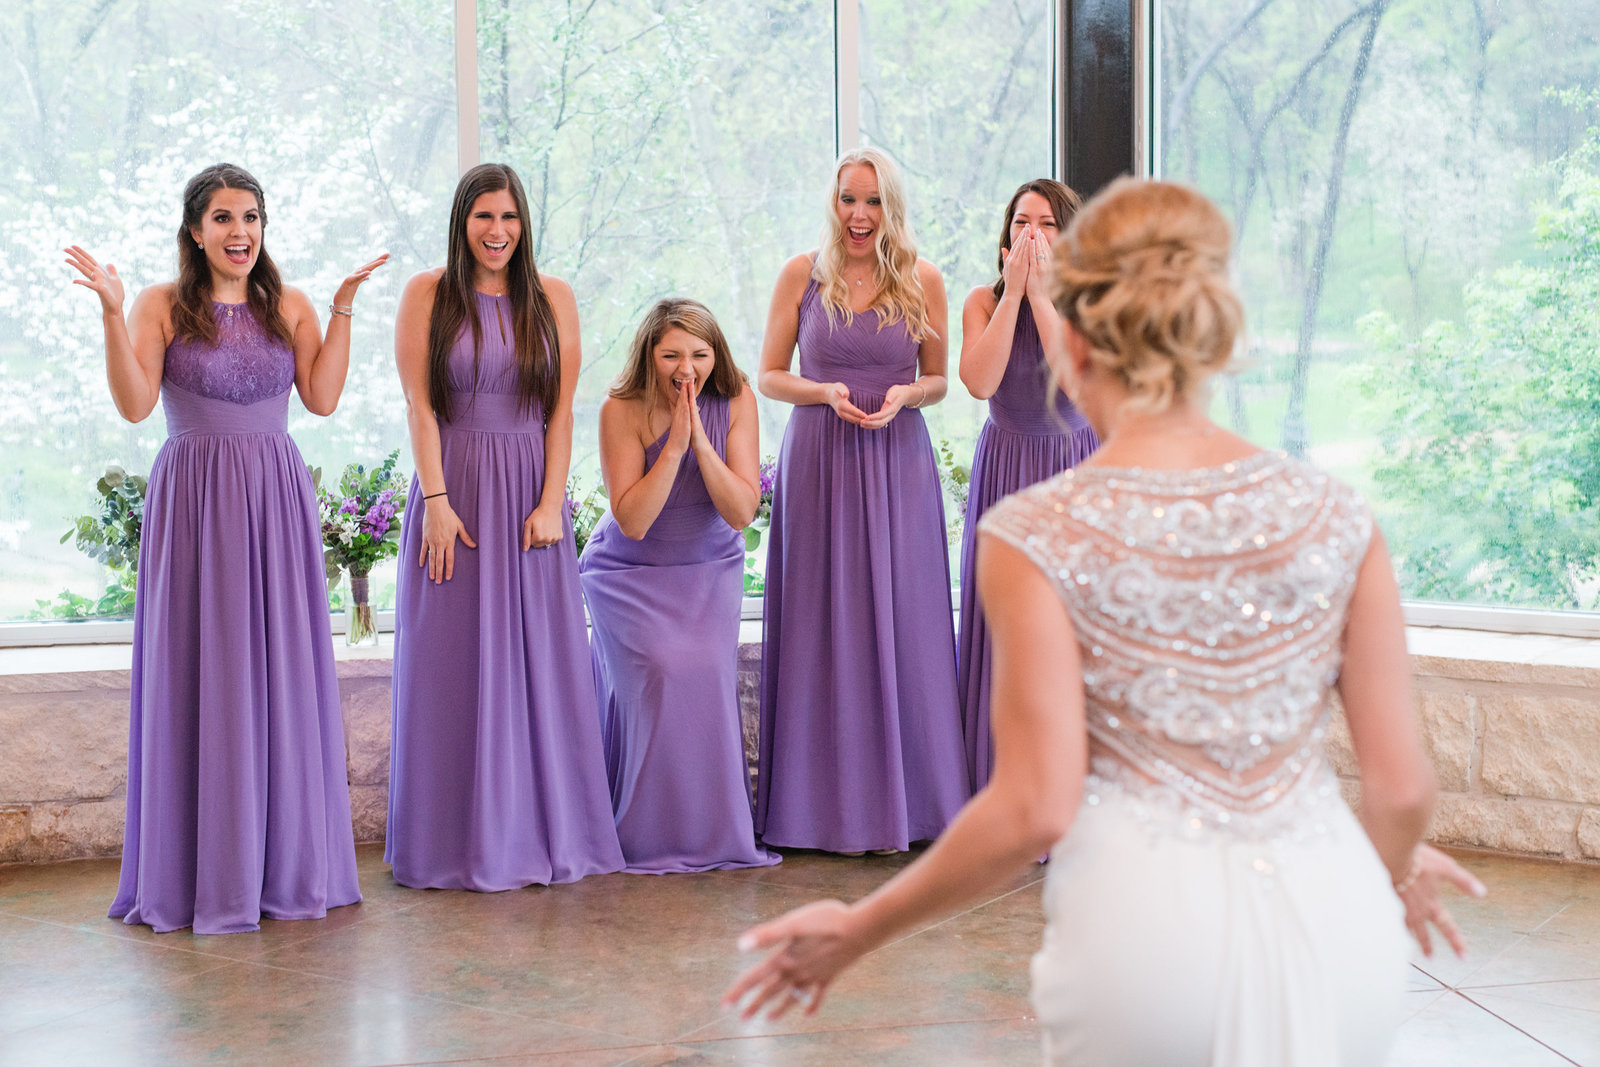 Bride reveals her dress to her bridesmaids in lavender at the Umlauf Sculpture Garden in Austin, Texas